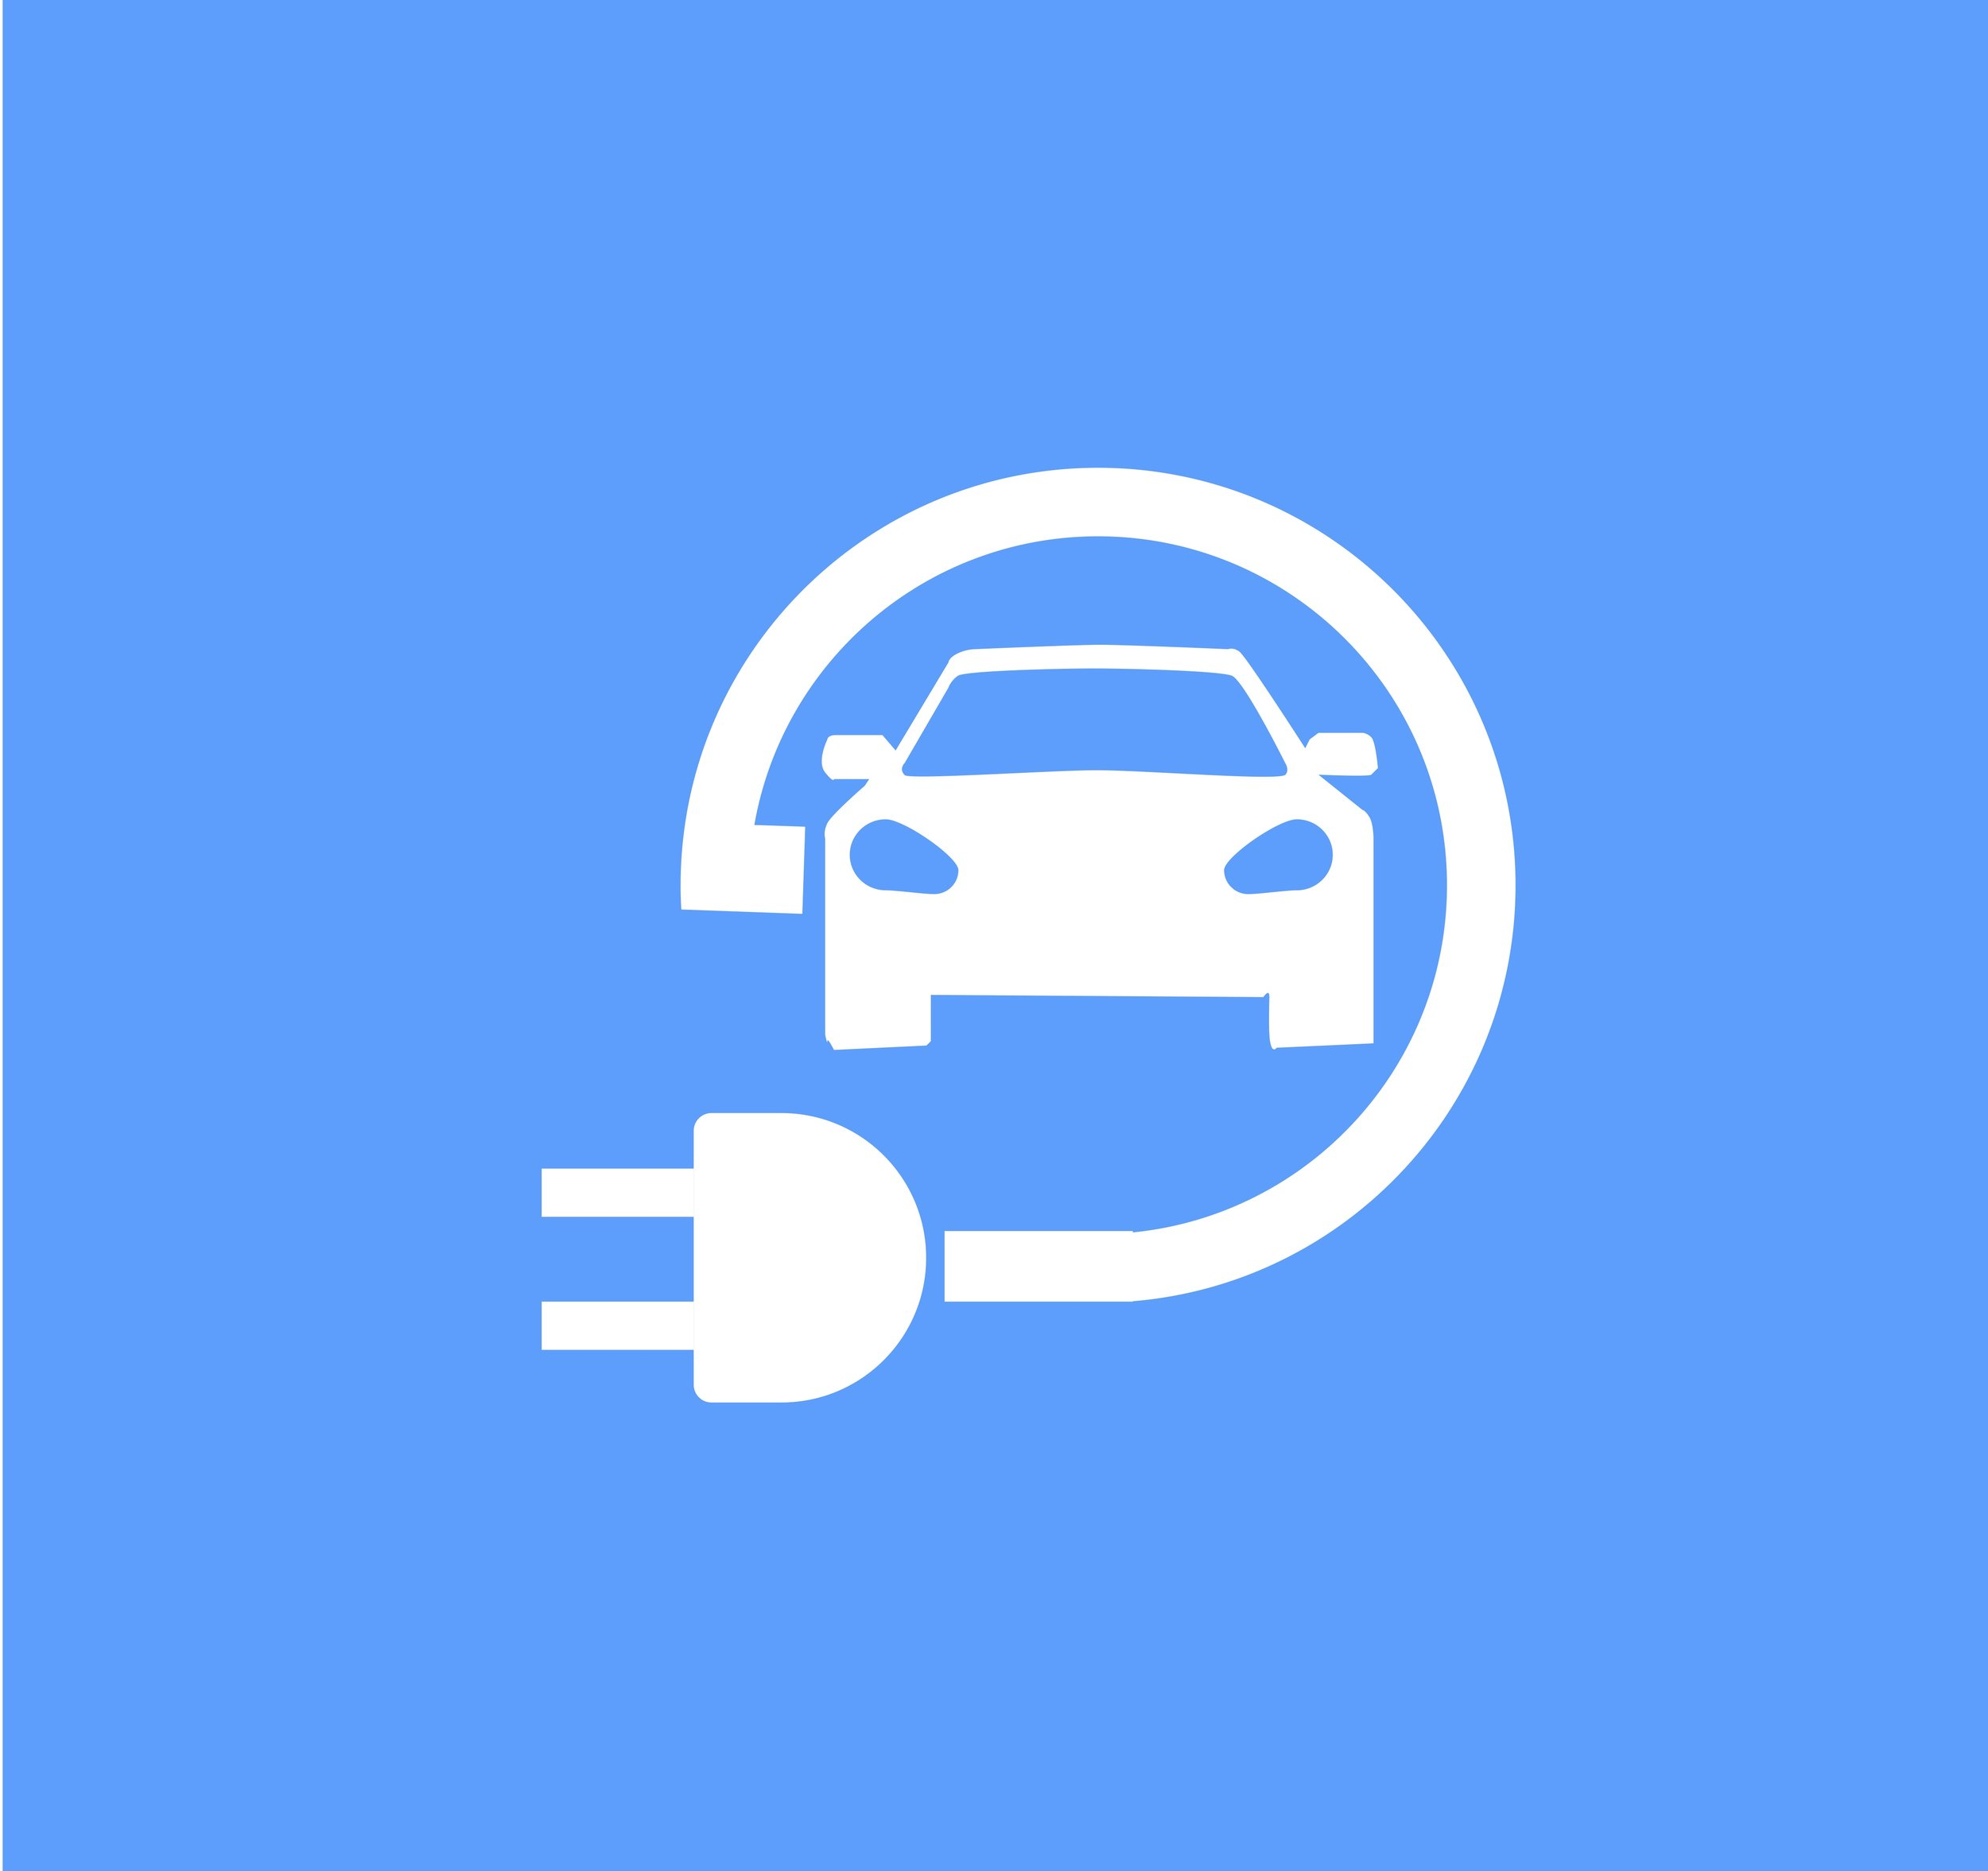 Charge your EV here! Credit: Shutterstock.com